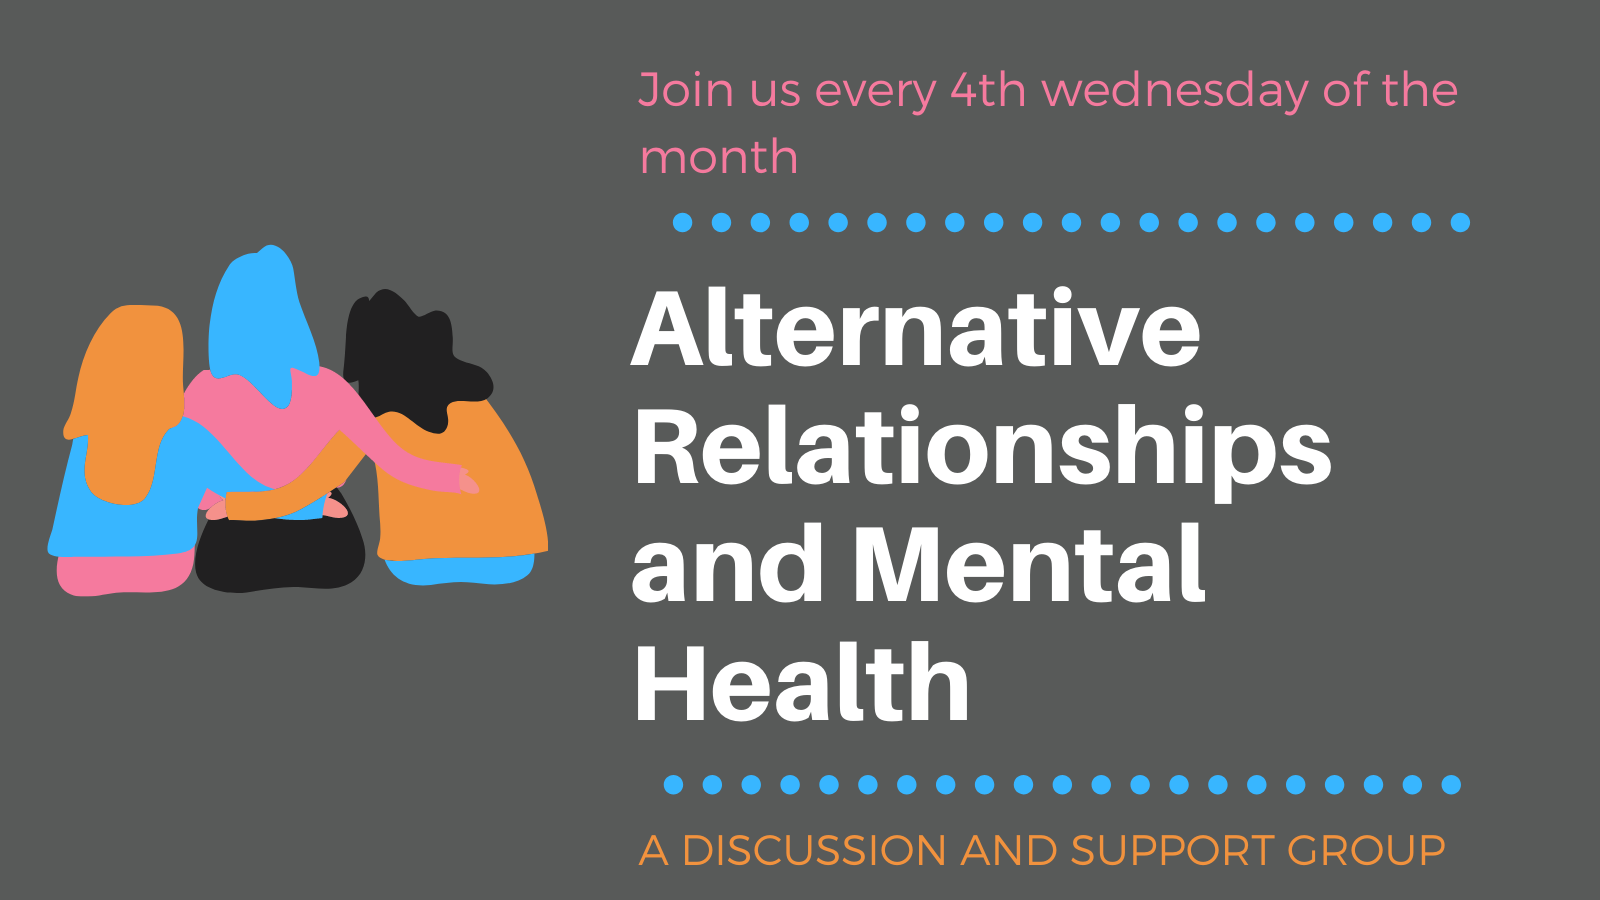 Alternative Relationship & Mental Health Discussion Circle